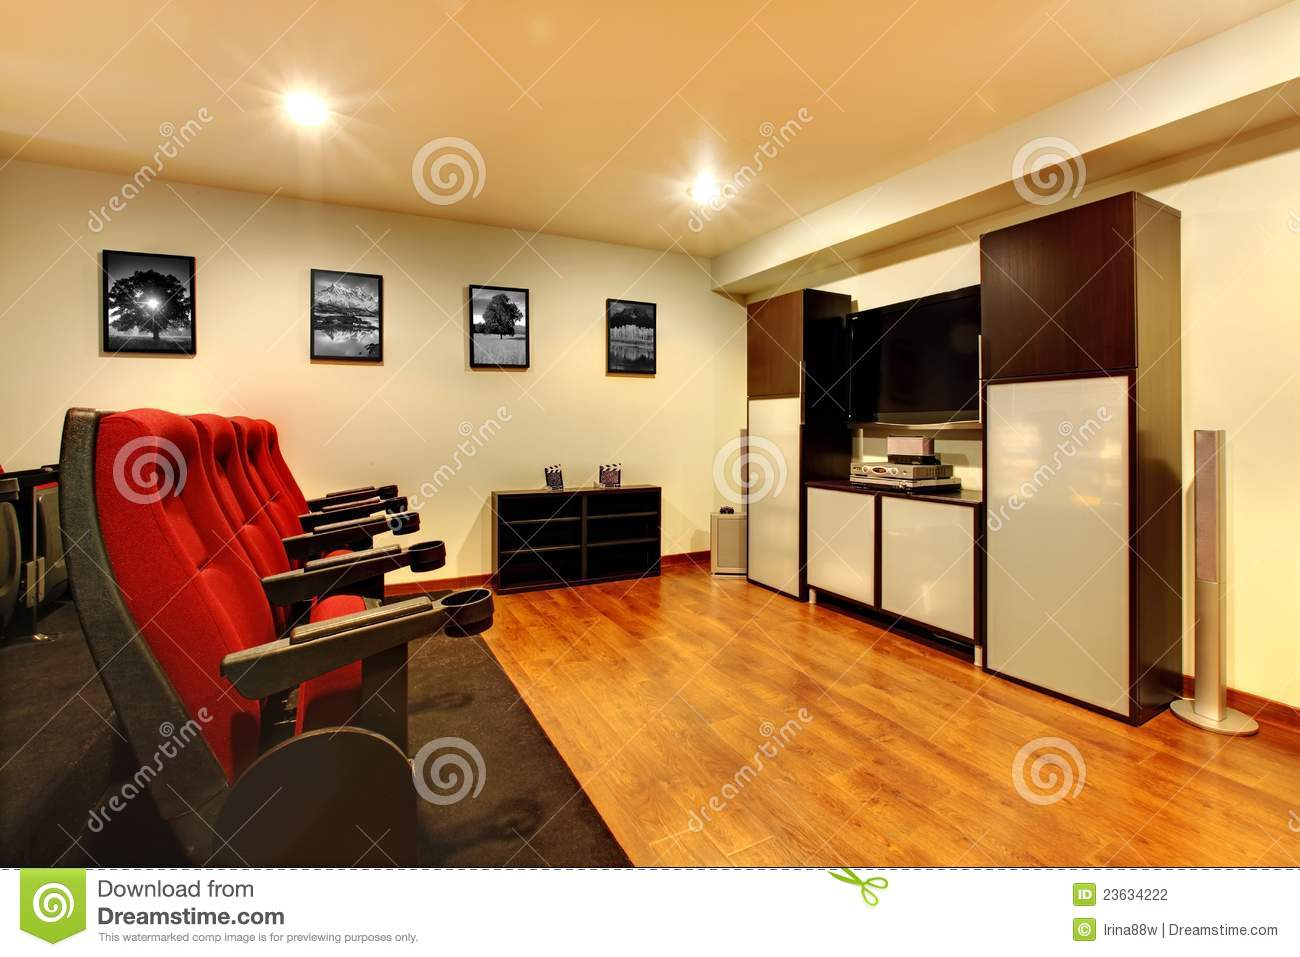 Home Tv Movie Theater Entertainment Room Interior Stock Photo Image Of American Living 23634222